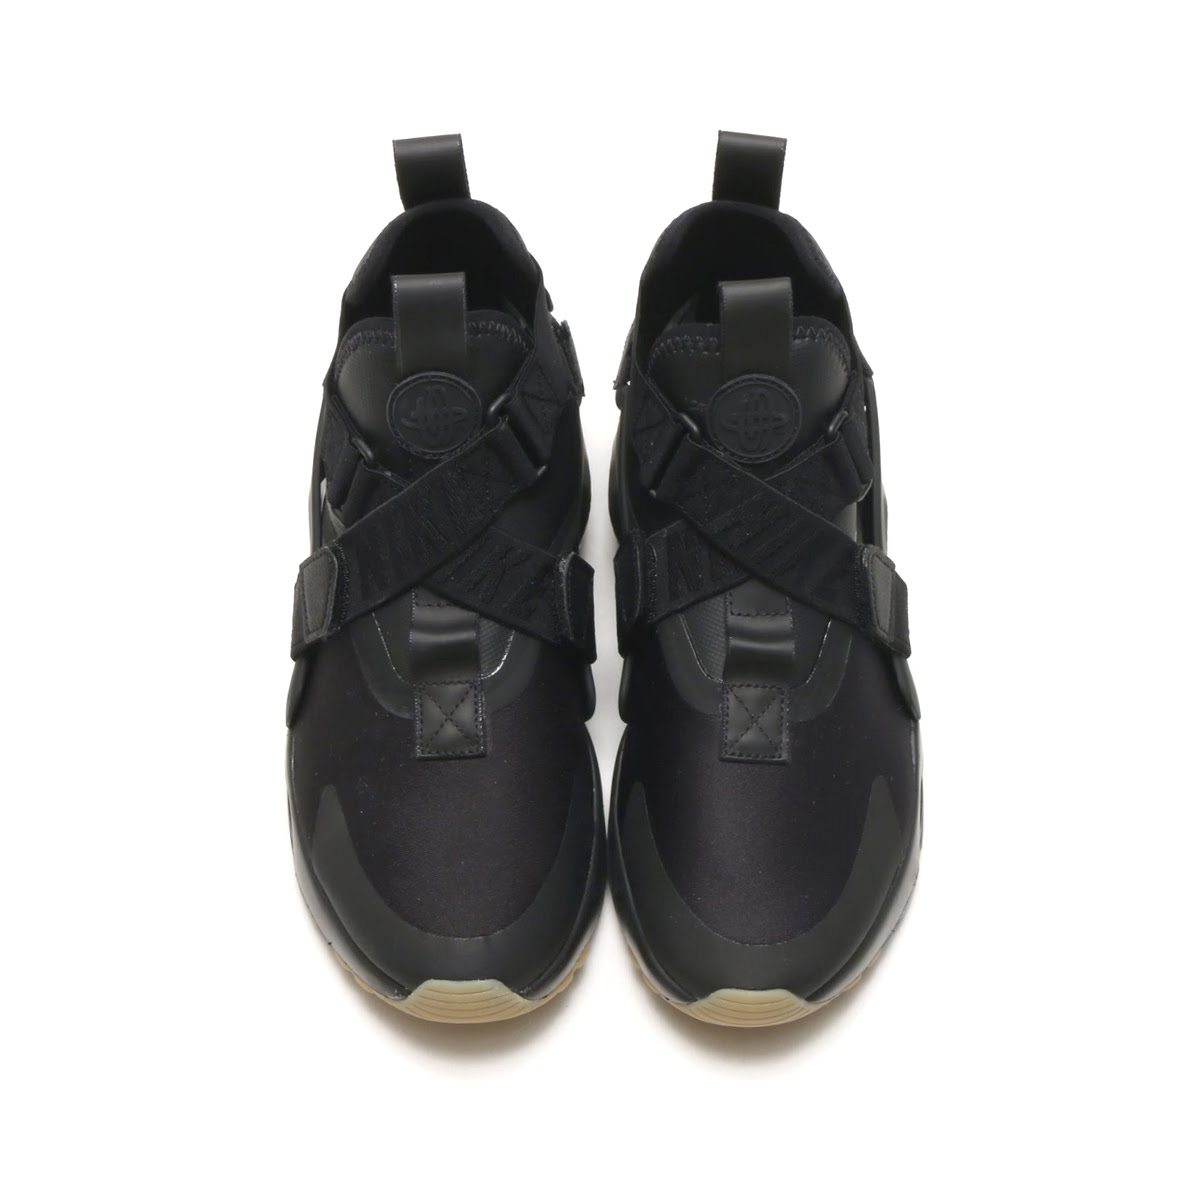 NIKE W AIR HUARACHE CITY (ナイキウィメンズエアハラチシティー) (BLACK/BLACK-DARK GREY-GUM  LIGHT BROWN) 18SP-S